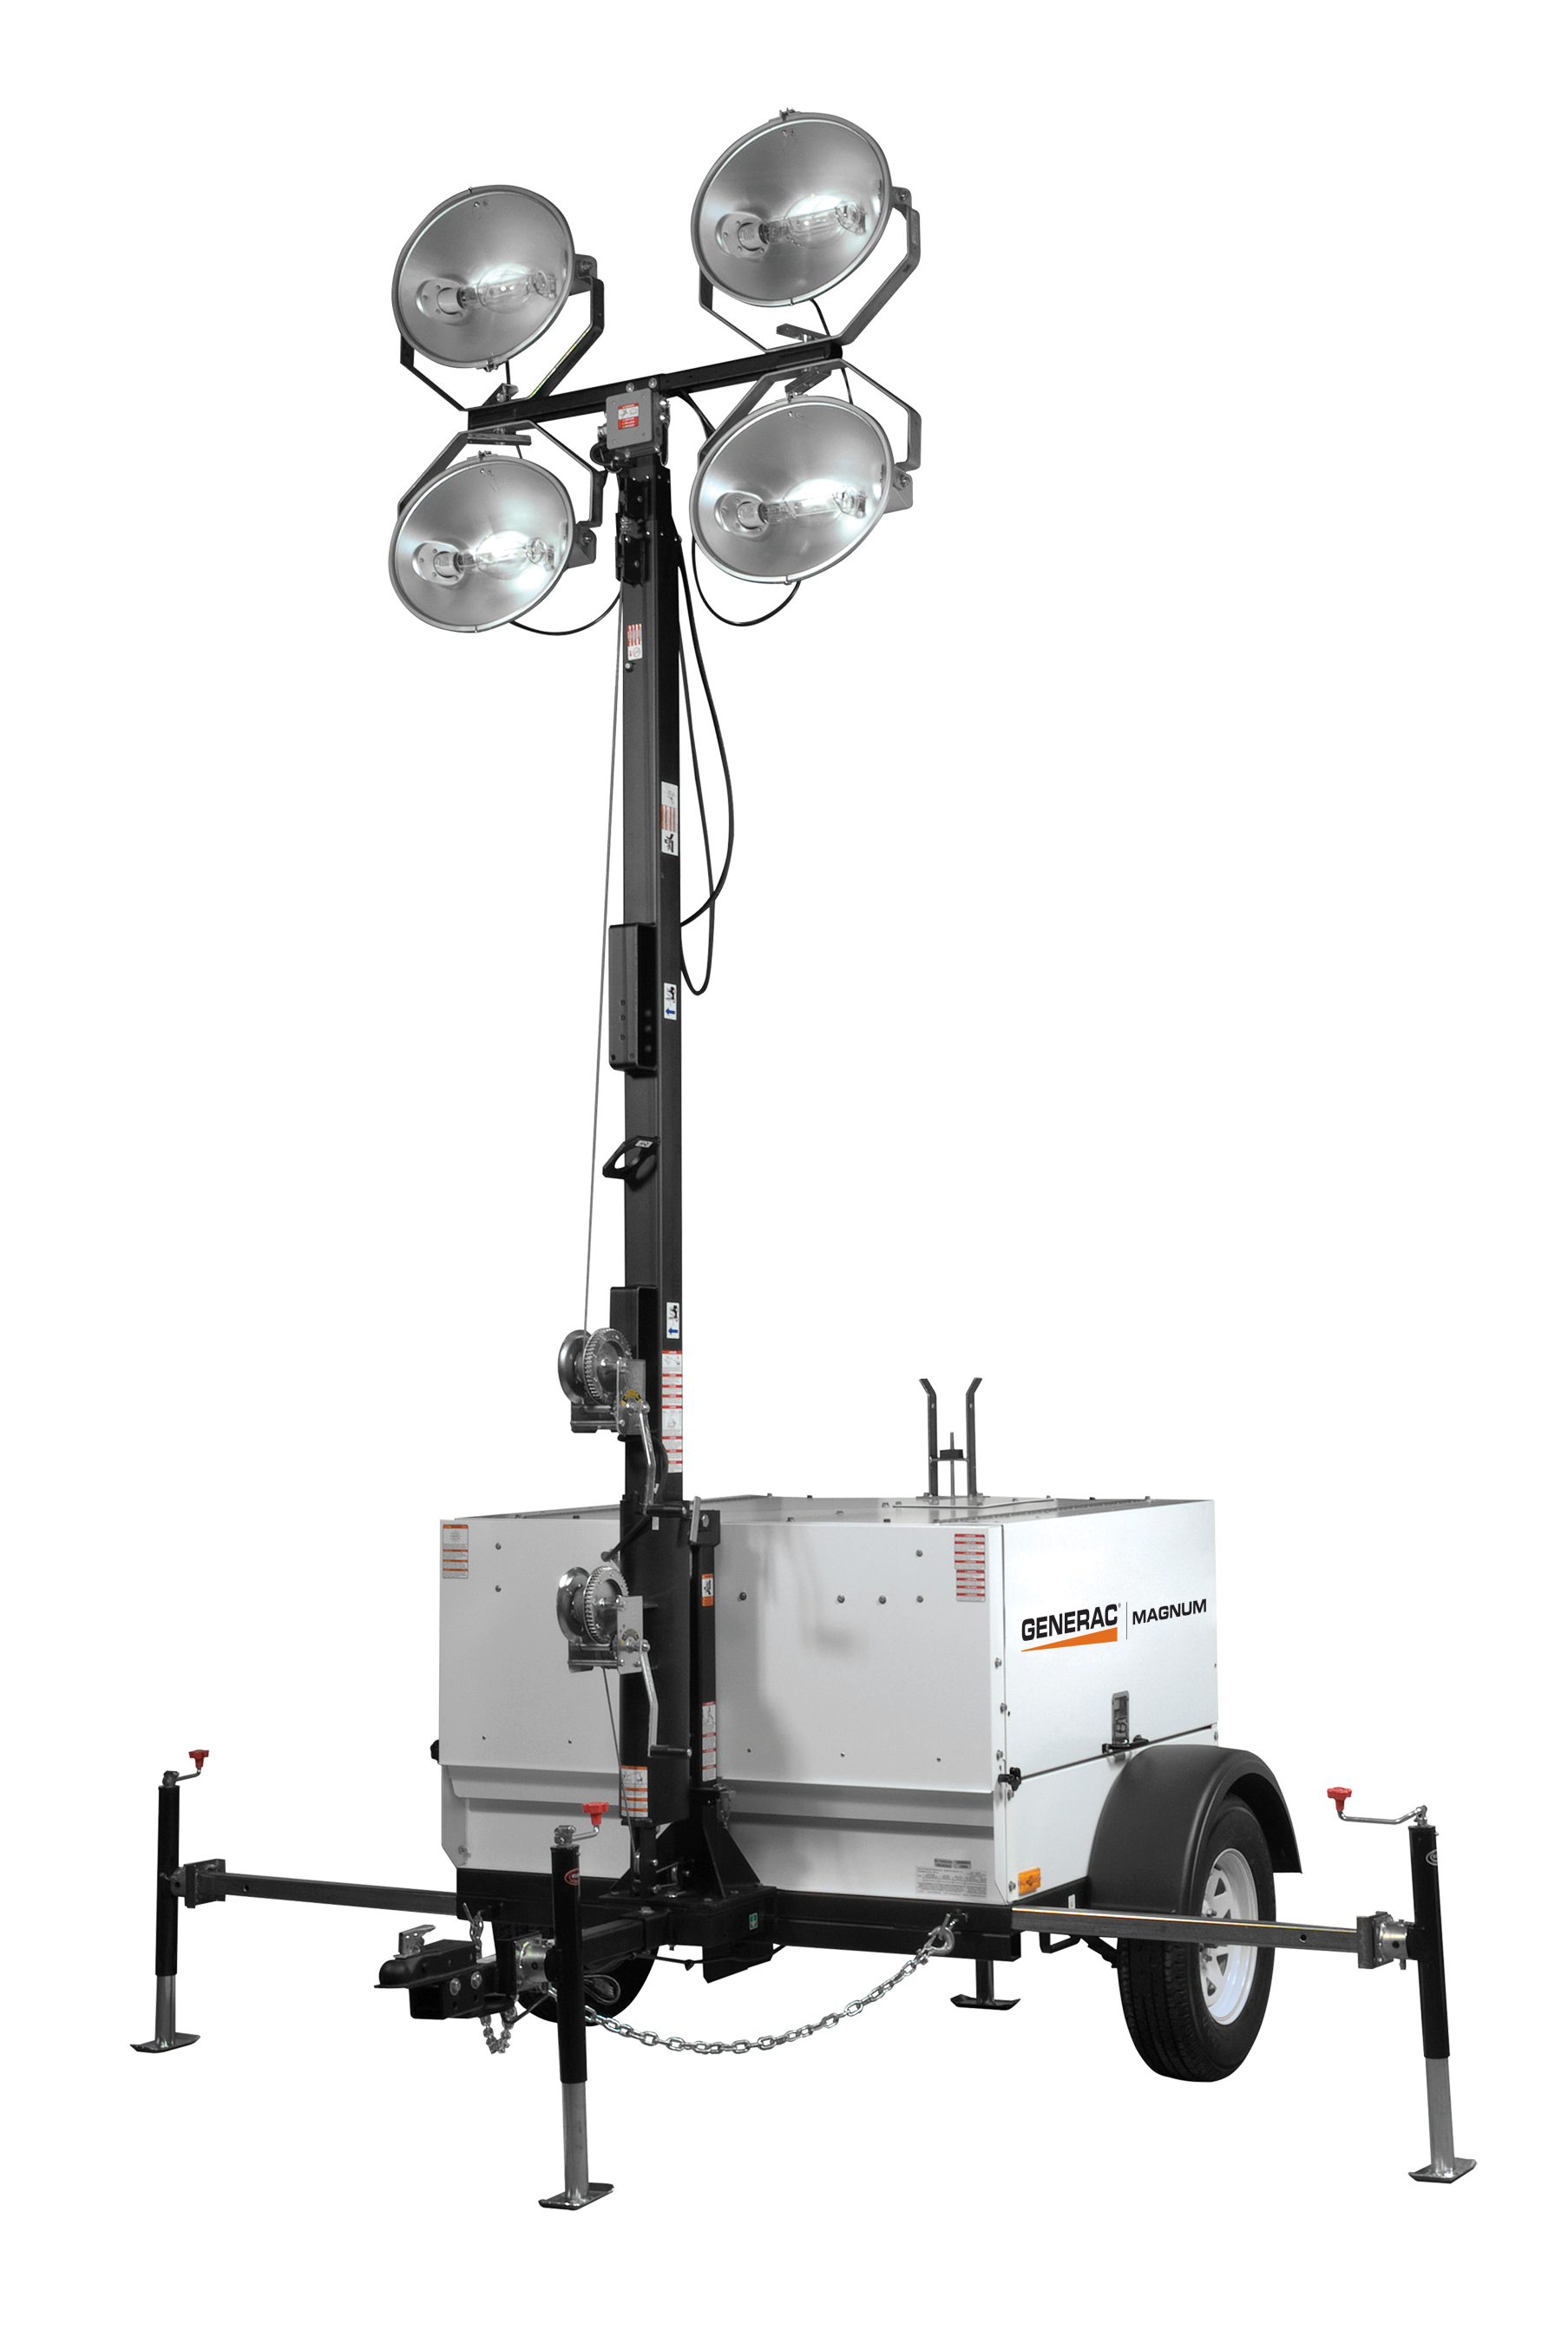 generac mlt5060 mobile metal halide light tower